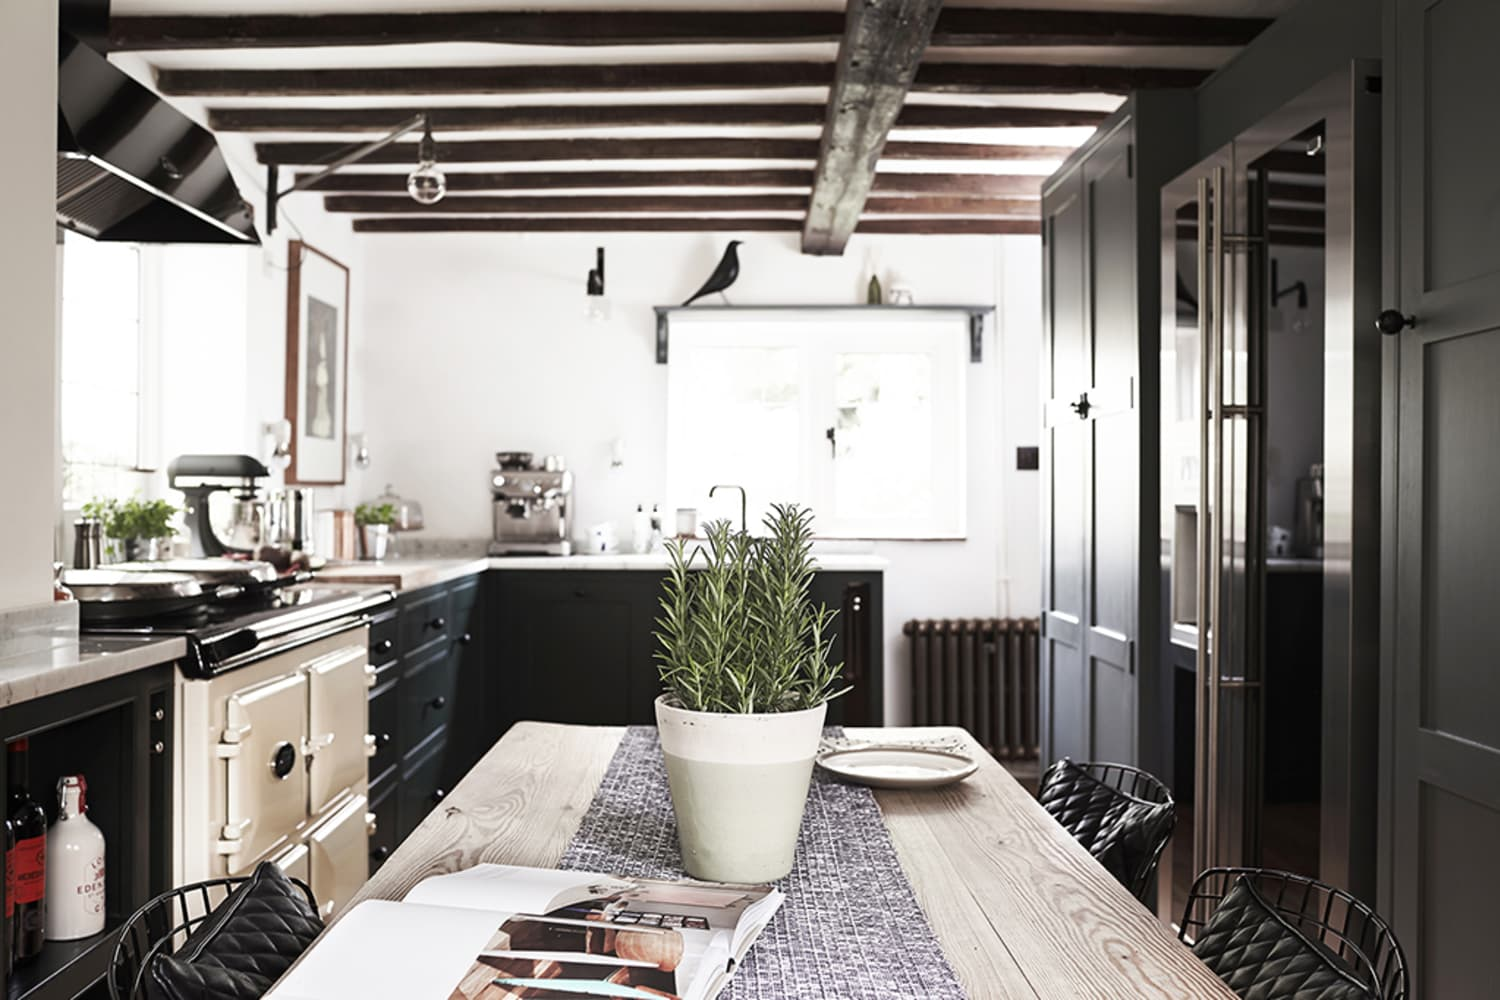 A Modern Kitchen For 250 Year Old English Cottage Apartment Therapy